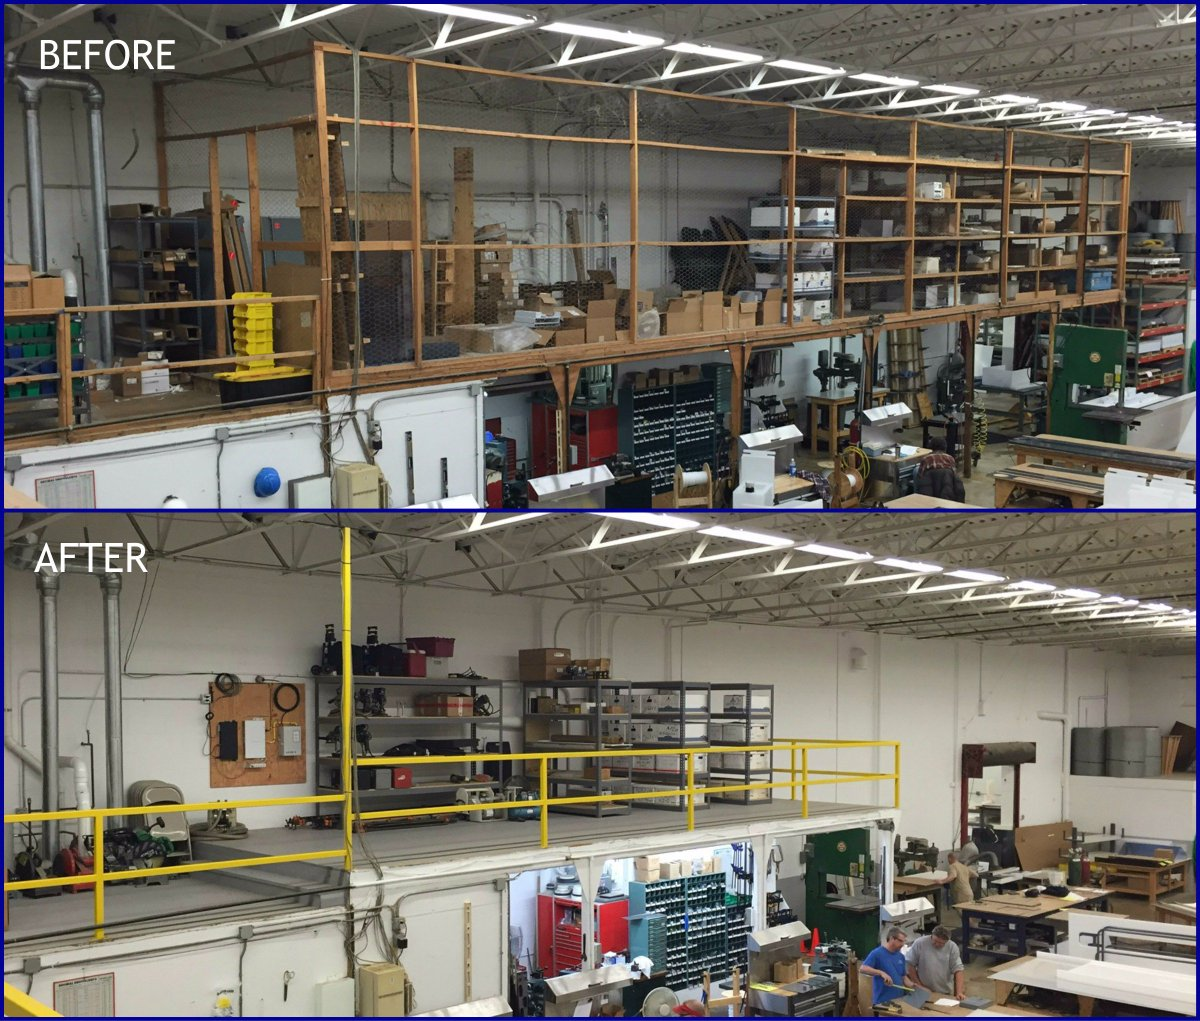 "Aetna Plastics On Twitter: ""Aetna Plastics Mezzanine #5S Project Before/After. #beforeandafter"